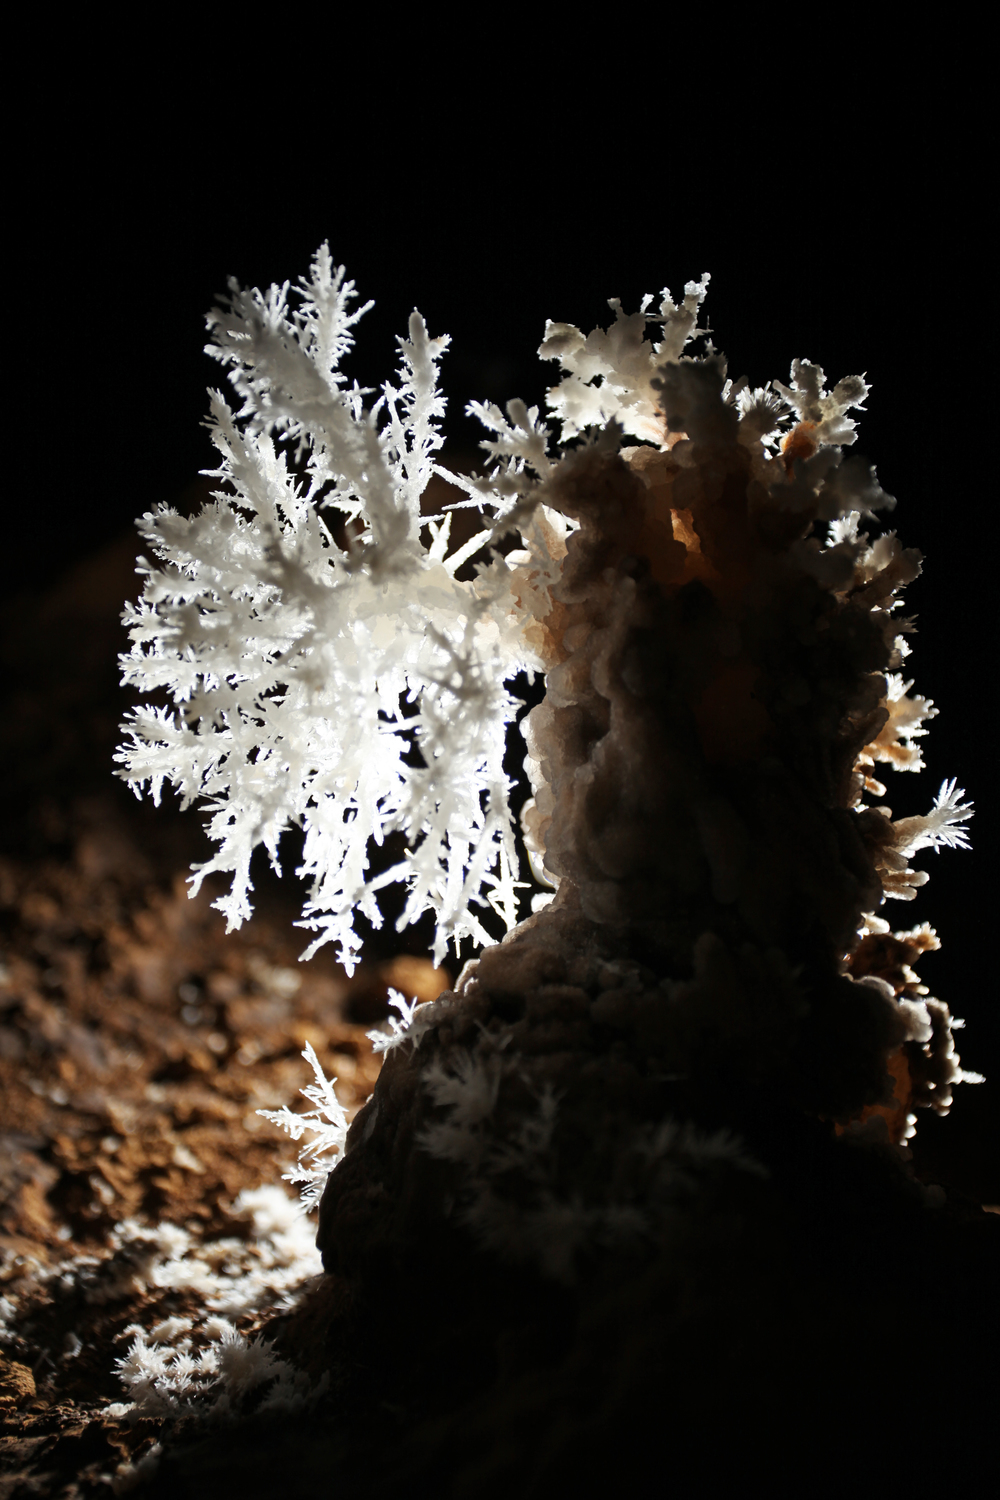 Anthodite hall is host to a mind blowing display of delicate anthodite crystals.